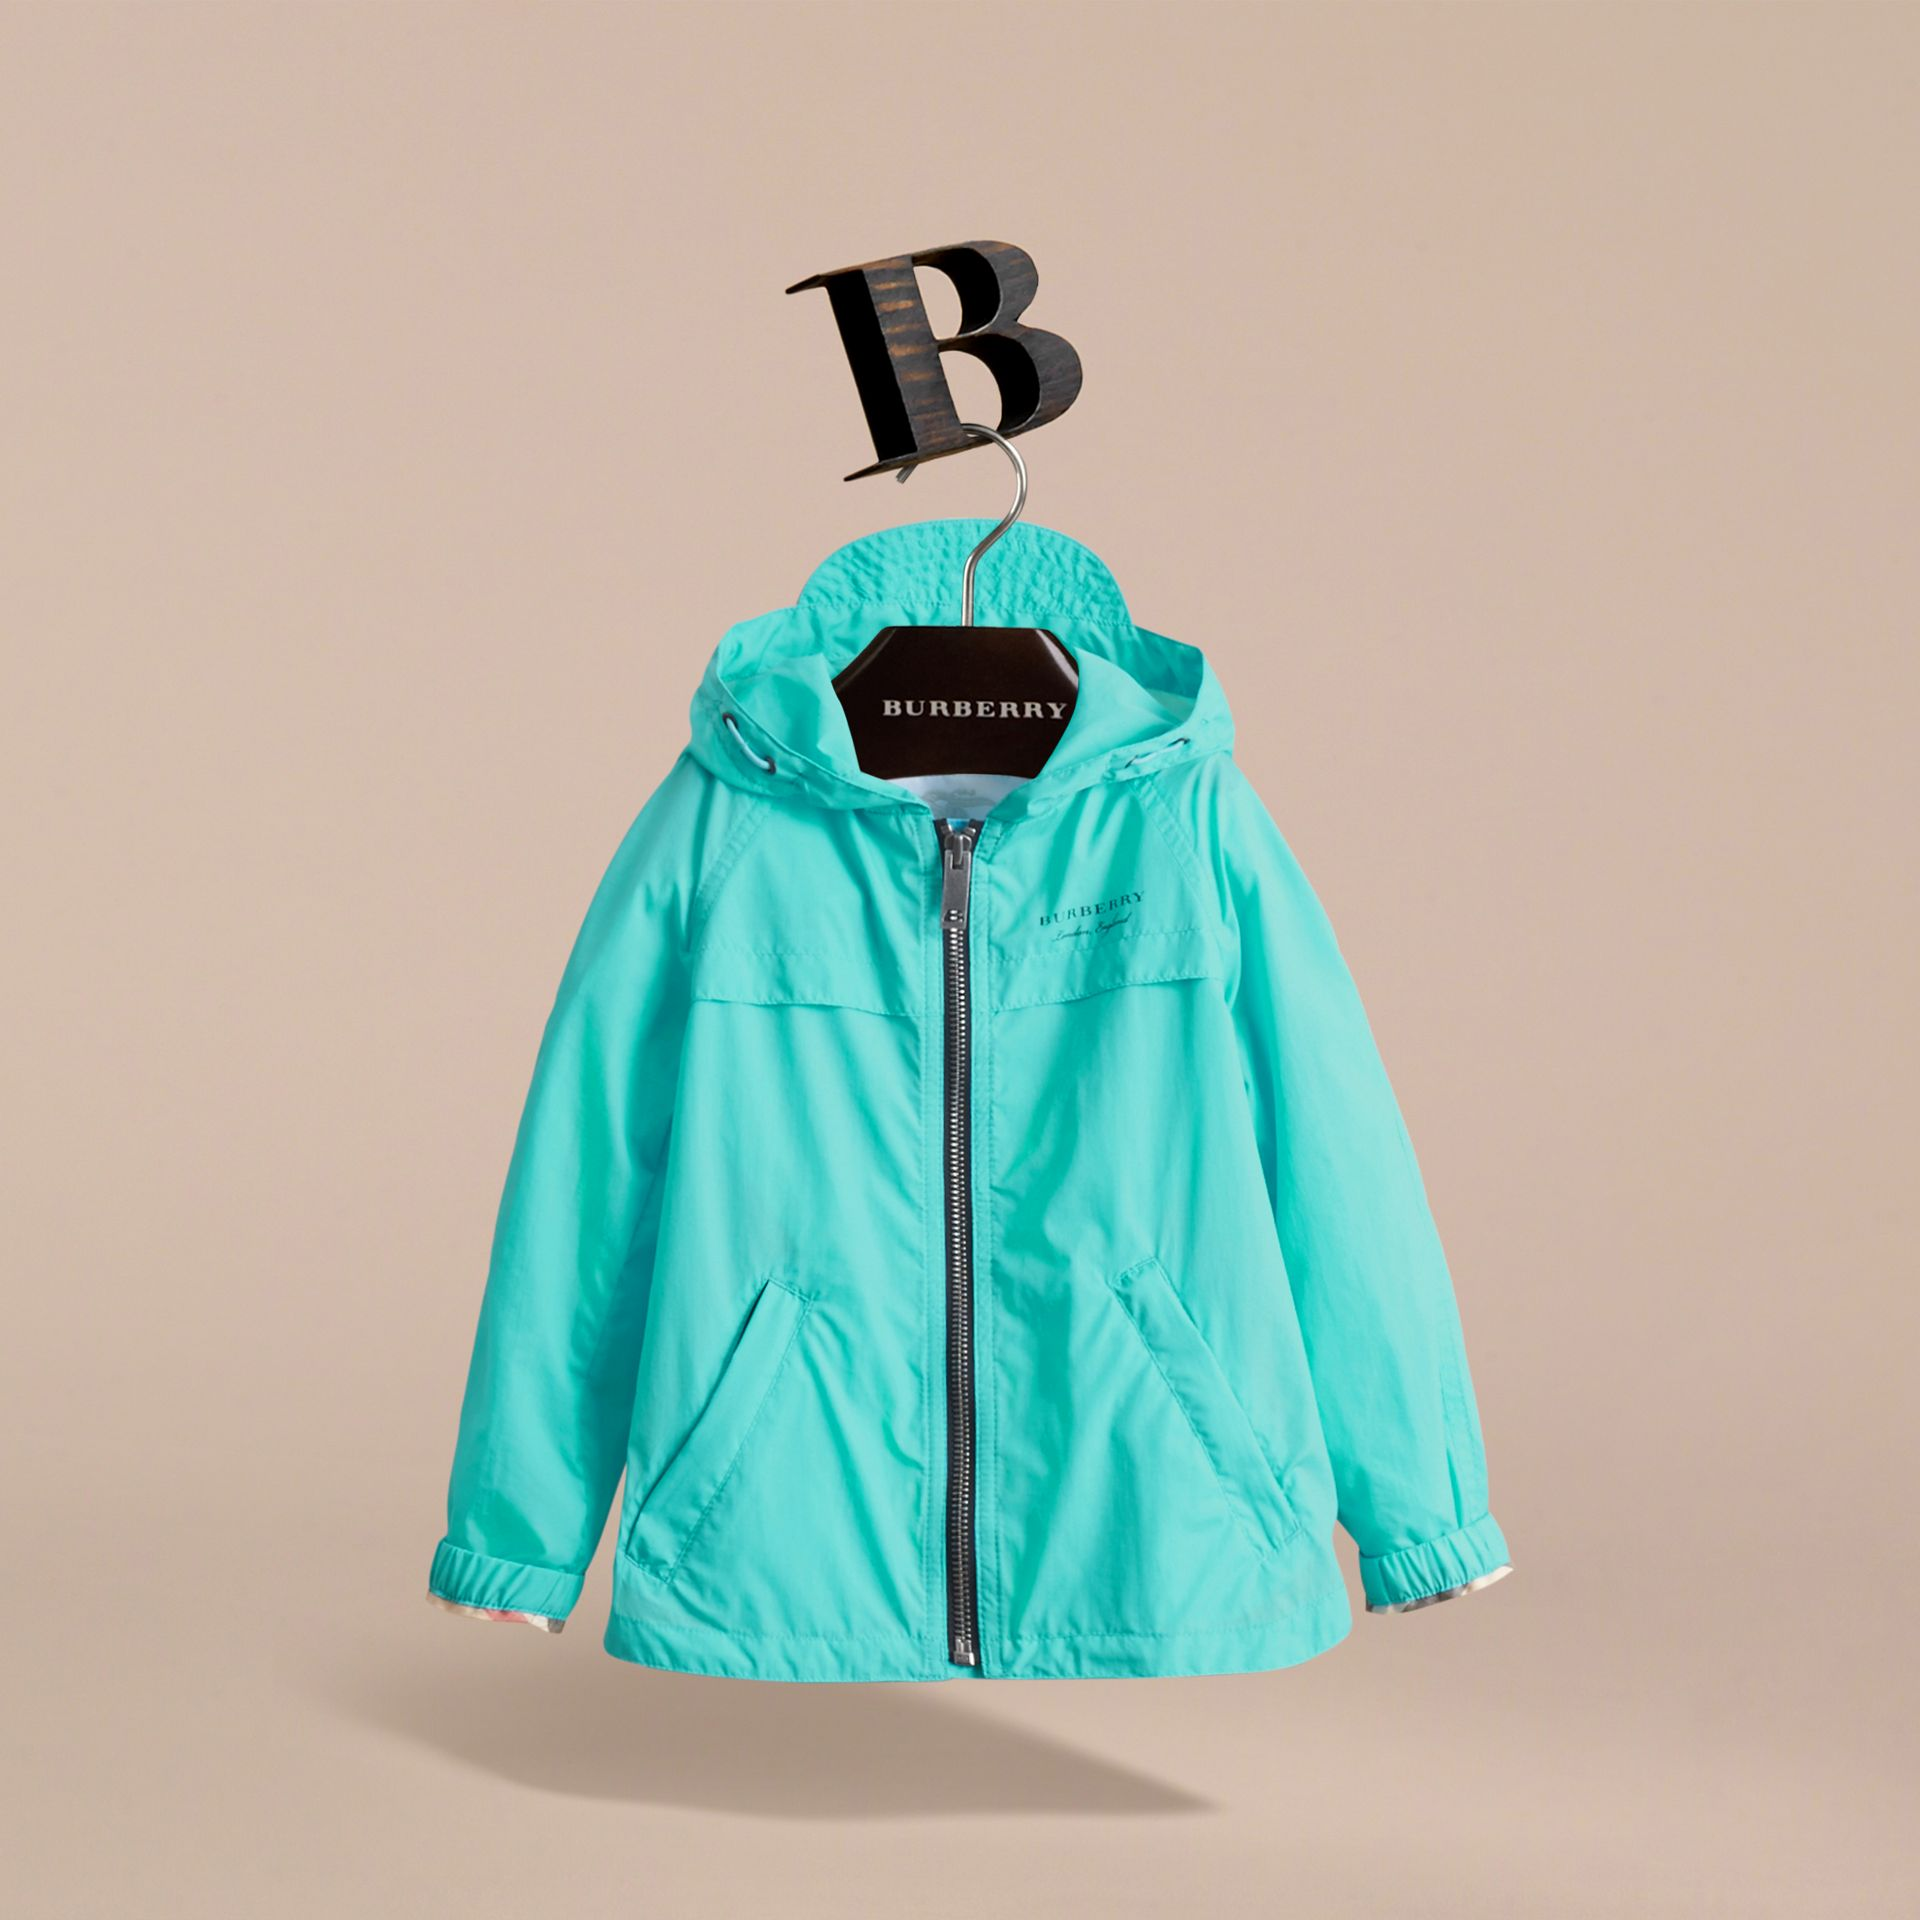 Showerproof Hooded Technical Jacket in Bright Turquoise | Burberry - gallery image 3